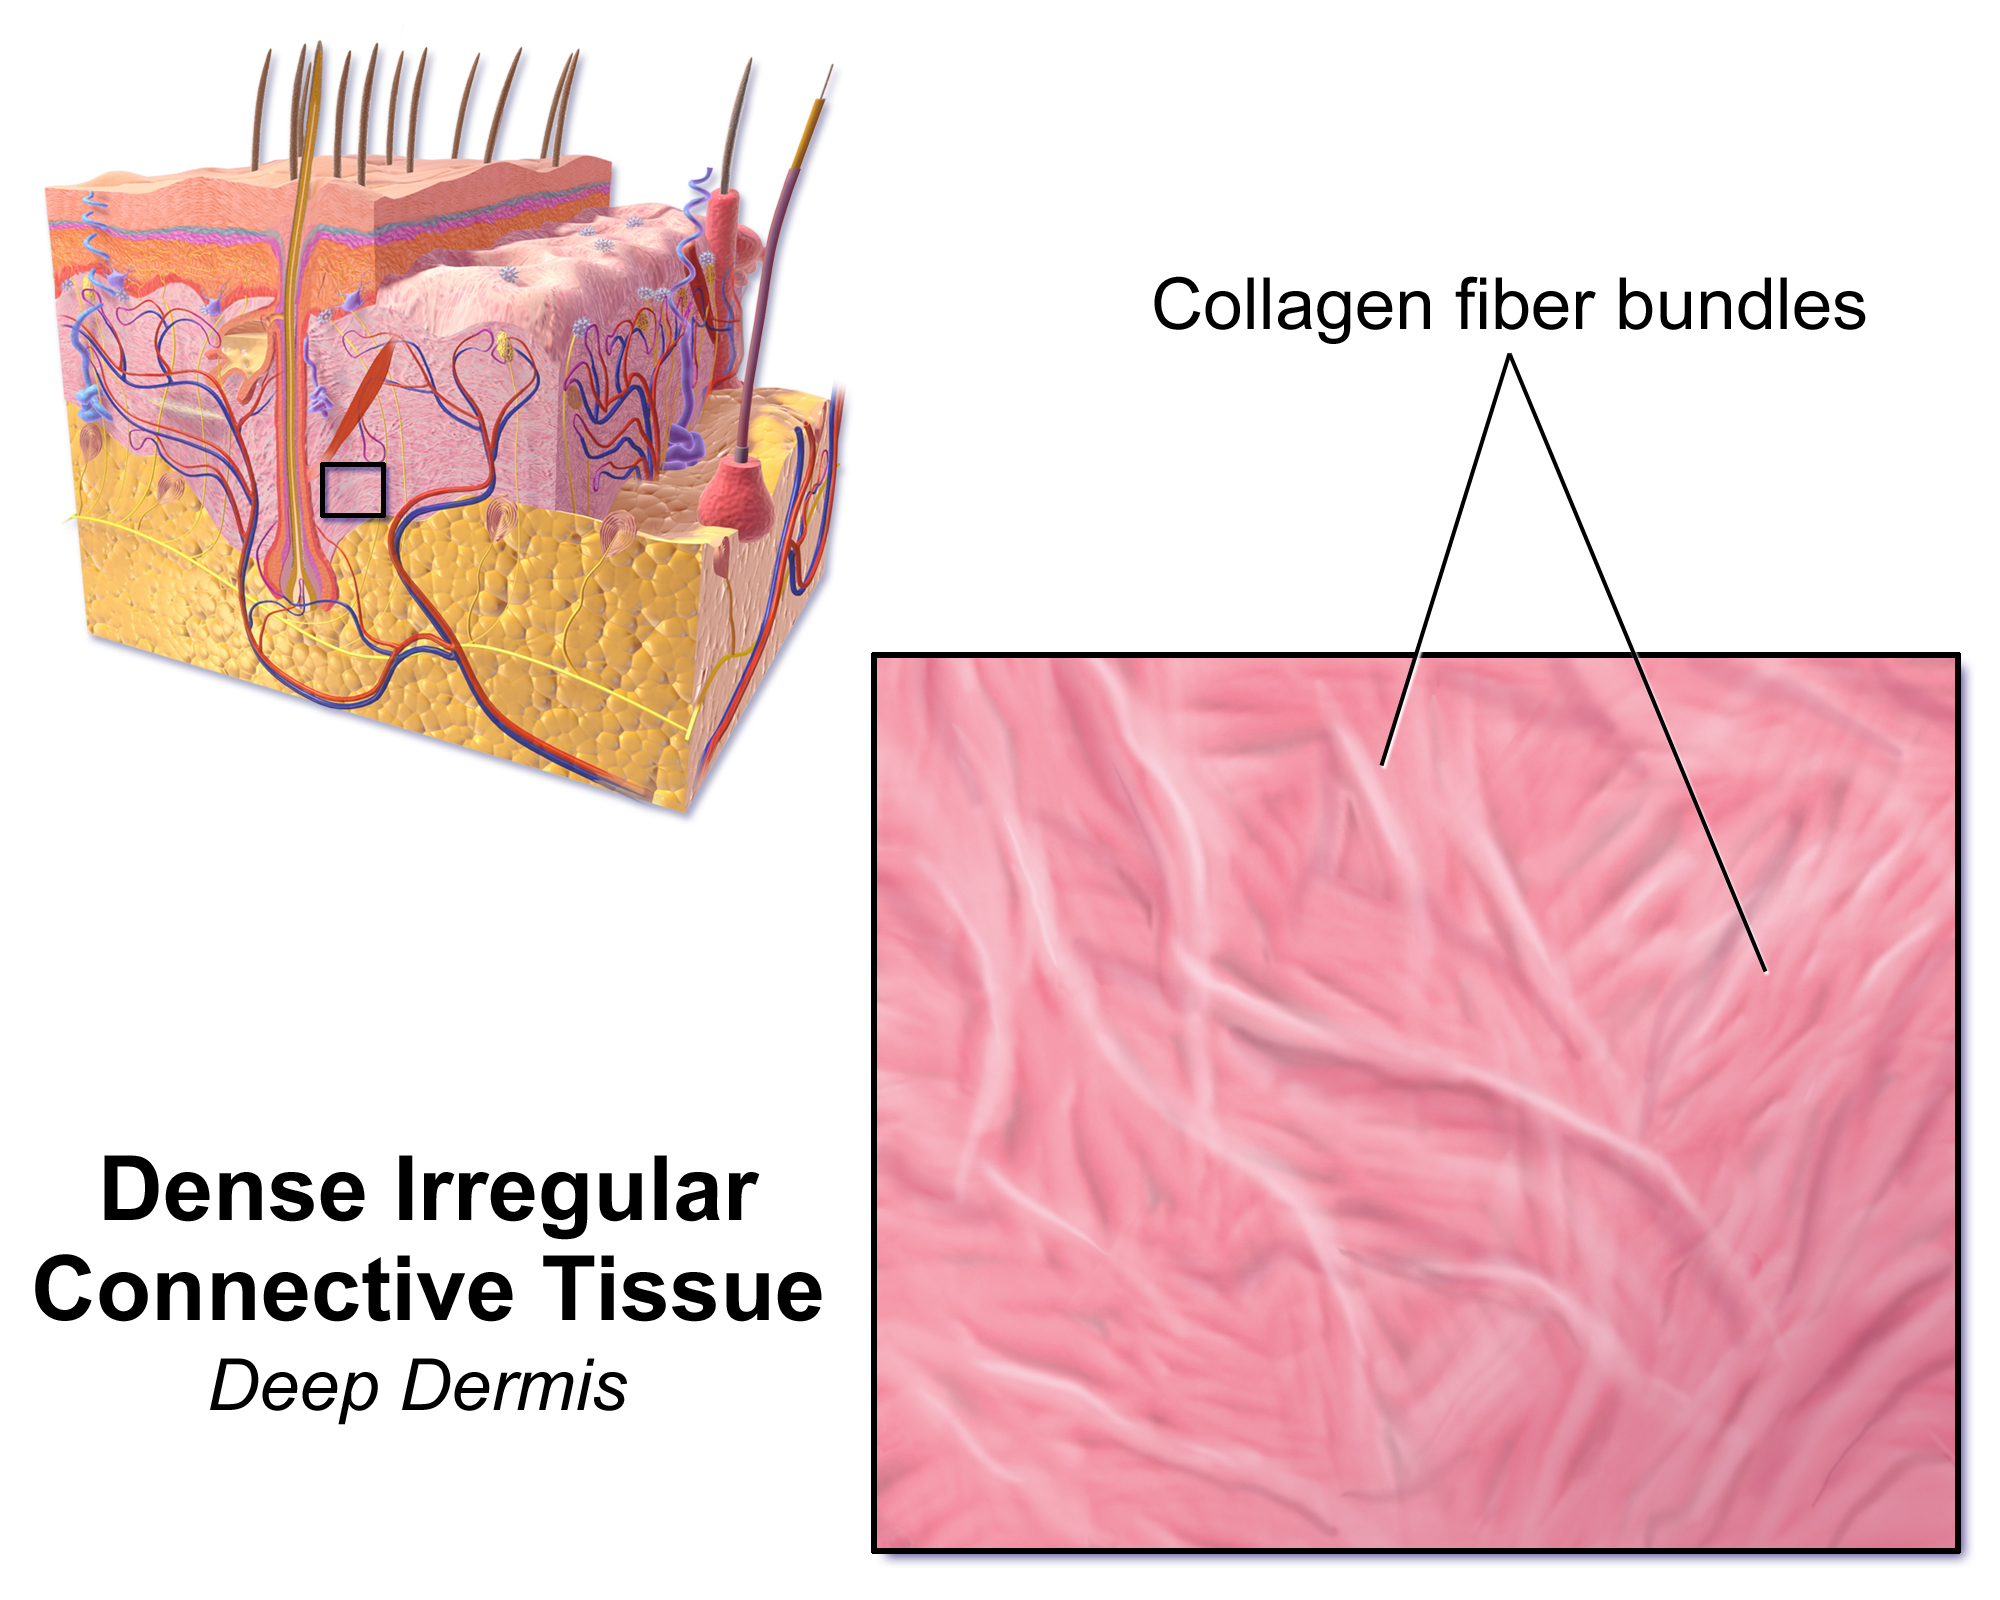 Protein and dense connective tissue